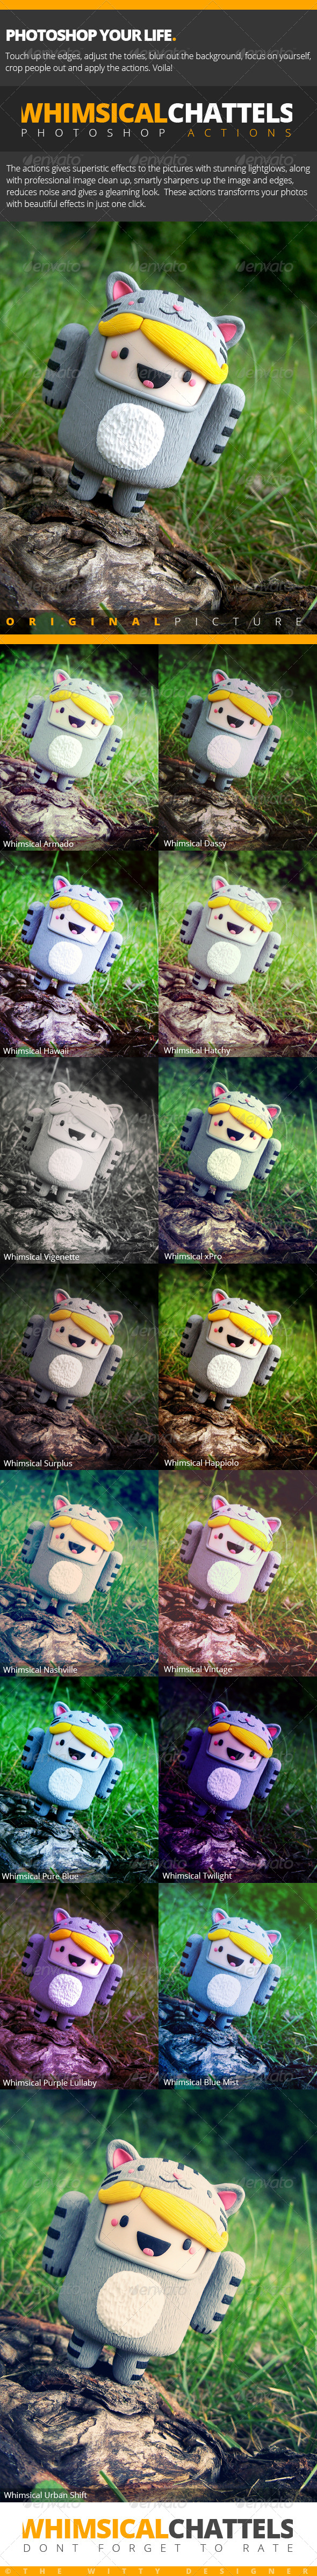 GraphicRiver Whimsical Chattels 15 Photoshop Actions 4703522